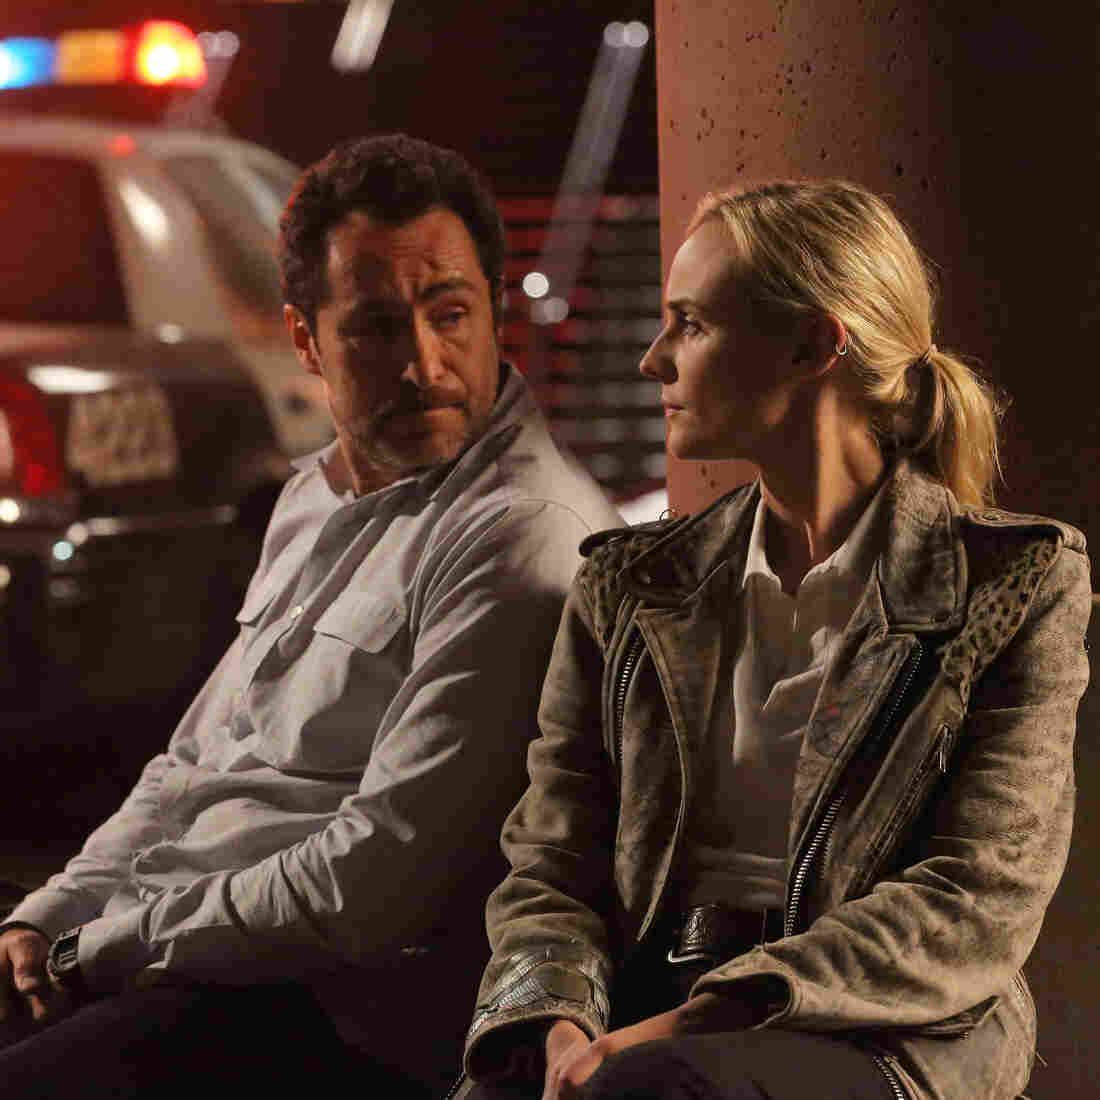 'Bridge' Actor Demian Bichir On Portraying Border Life